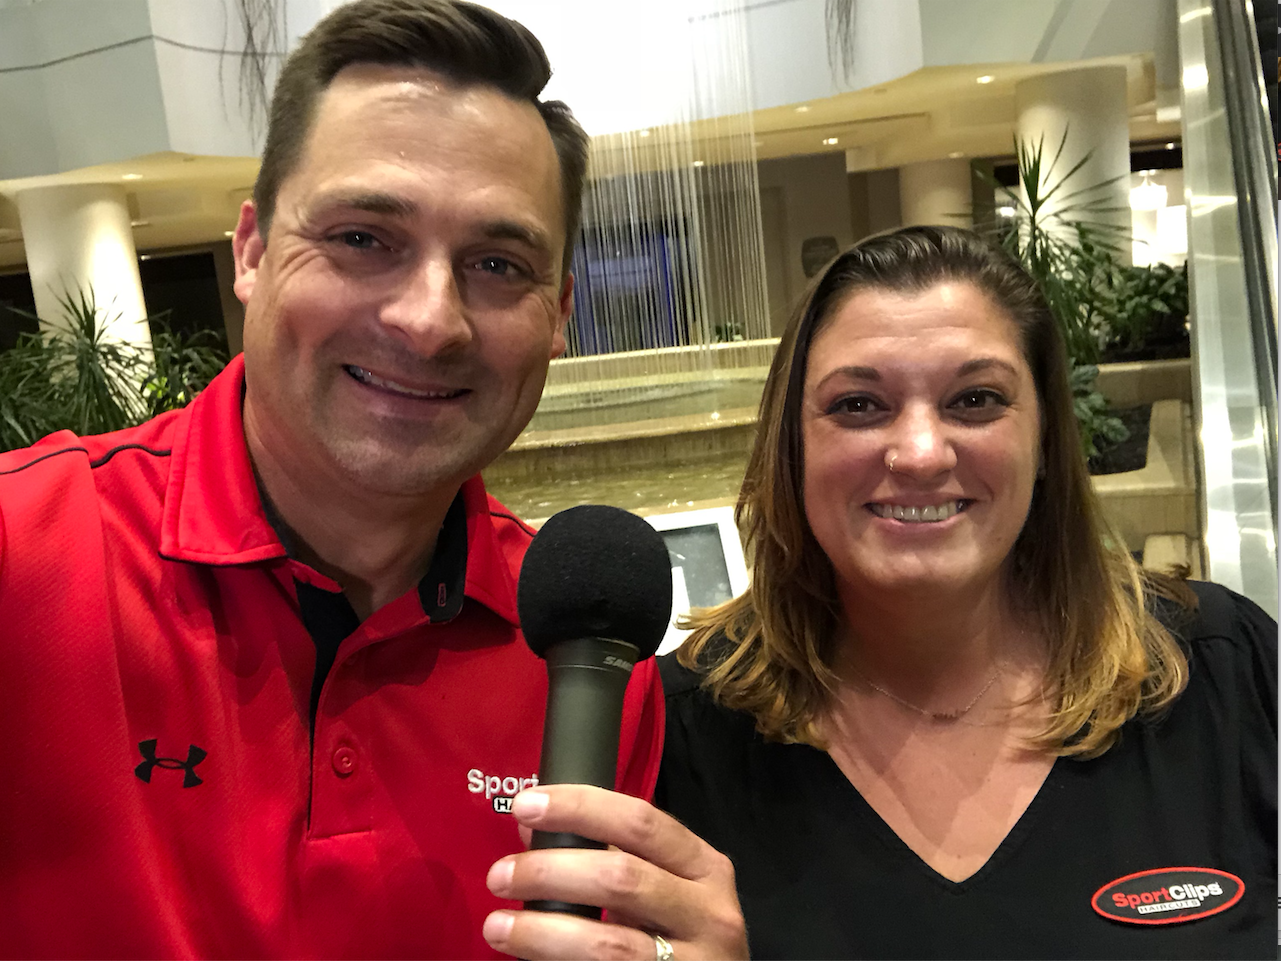 Chad Jordan and Meghan Blanchette holding a microphone in front of a water fountain